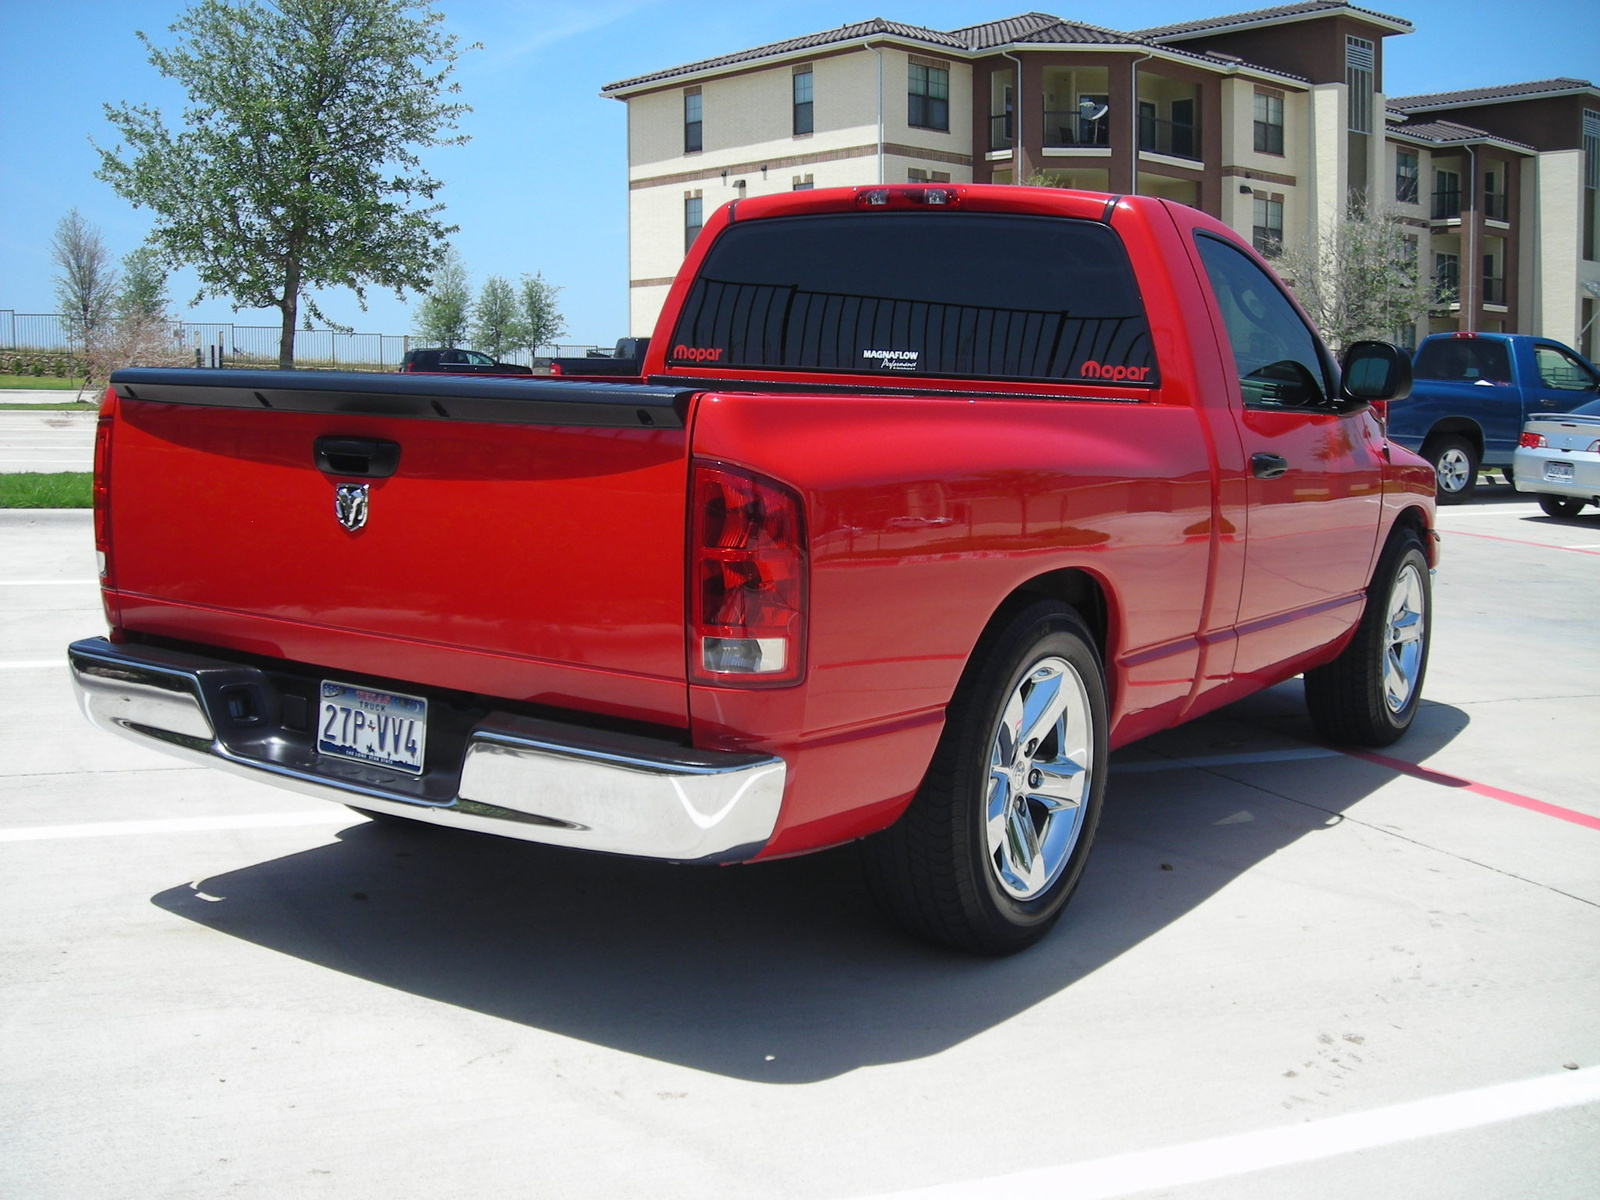 2006 dodge ram pickup 1500 exterior pictures cargurus. Black Bedroom Furniture Sets. Home Design Ideas